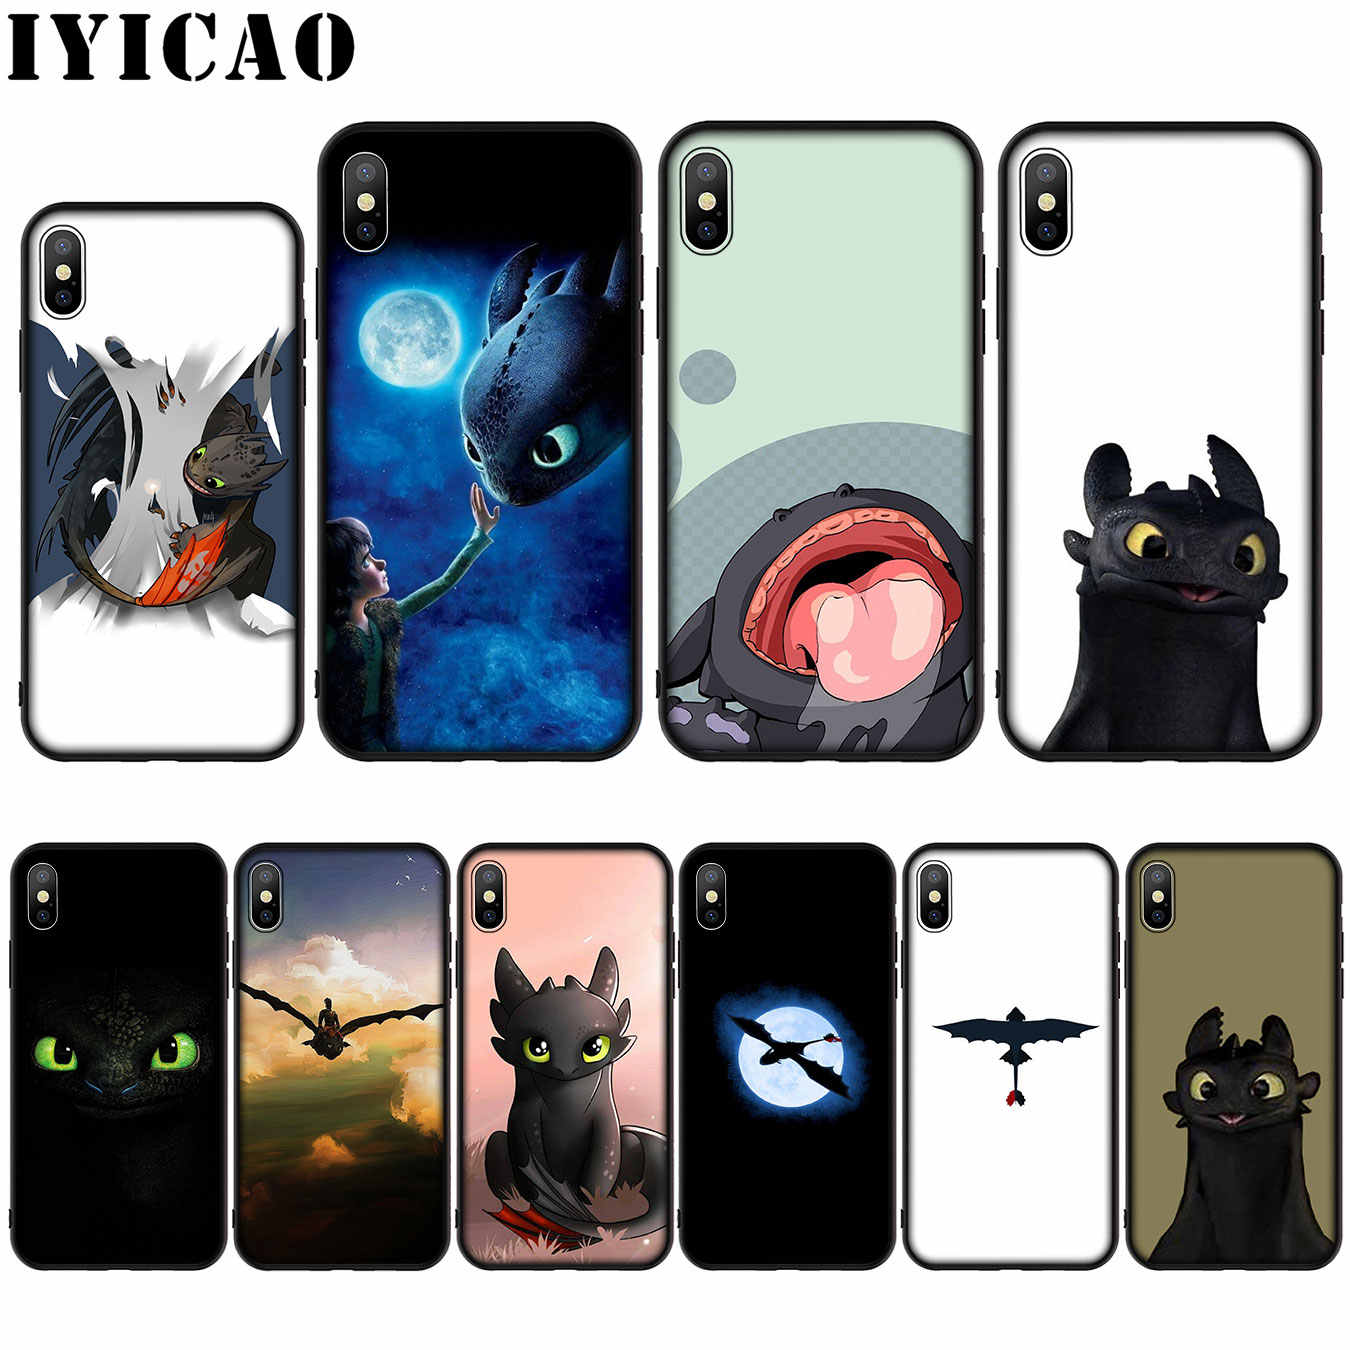 How To Train Your Dragon desdentado Silicone Soft Case para iphone 5 11 Pro Max XR X XS Max 8 7 6 6S Plus 5 5S SE Tampa